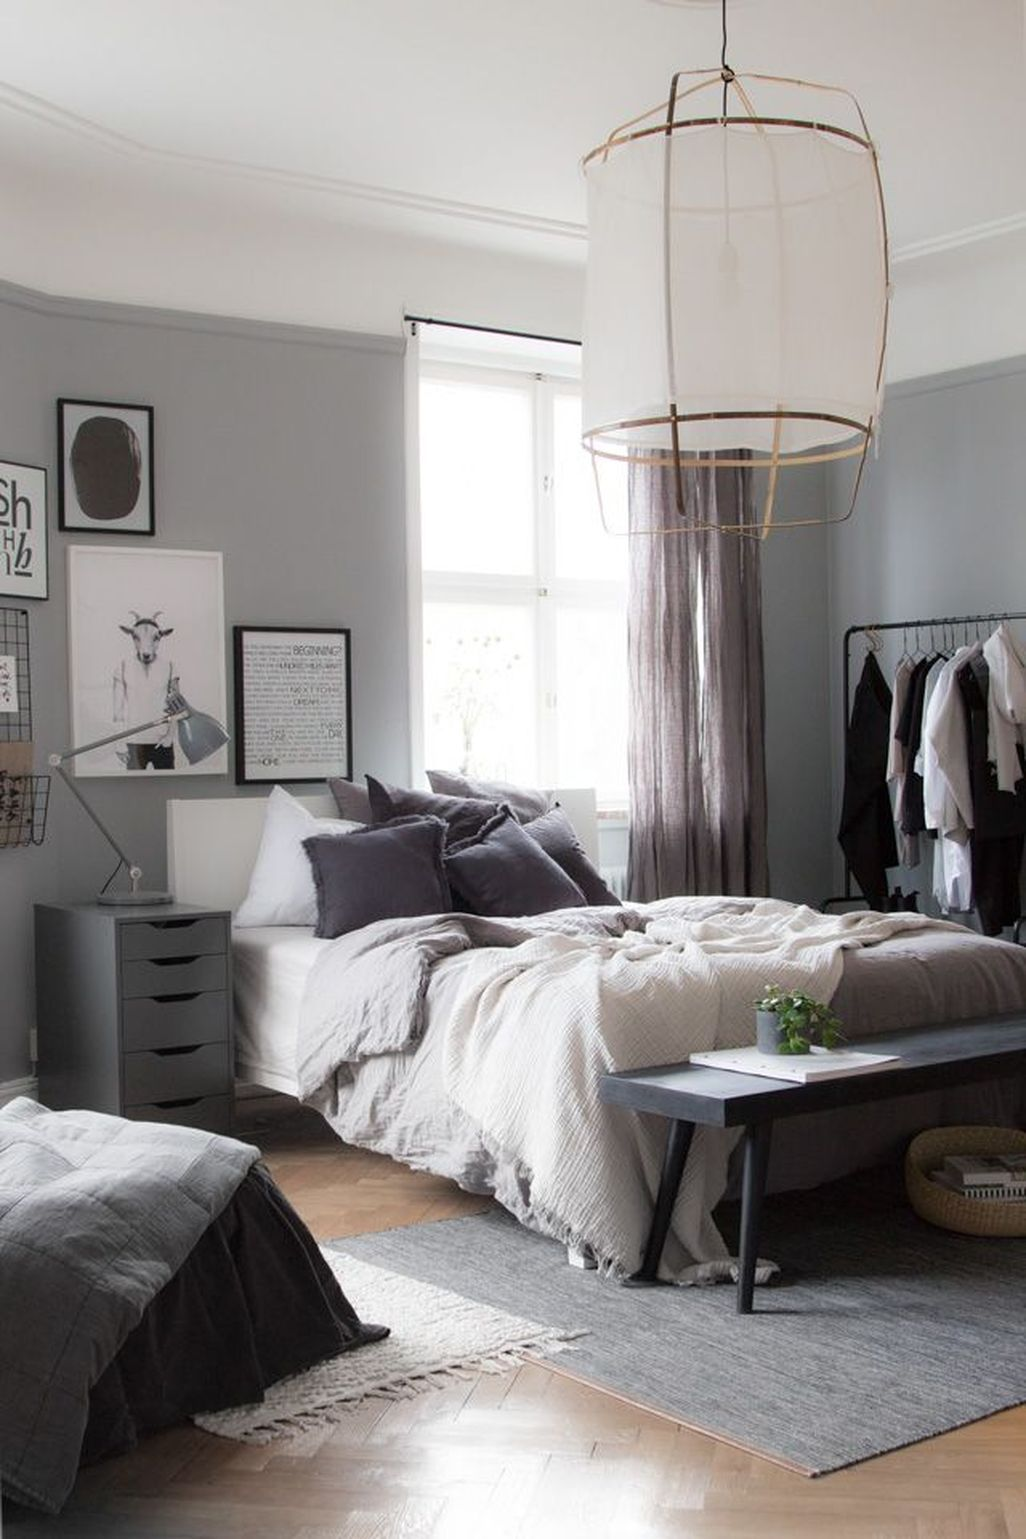 Danish Modern Bedroom Furniture: Pin By Trend4homy On Trending Decoration In 2019